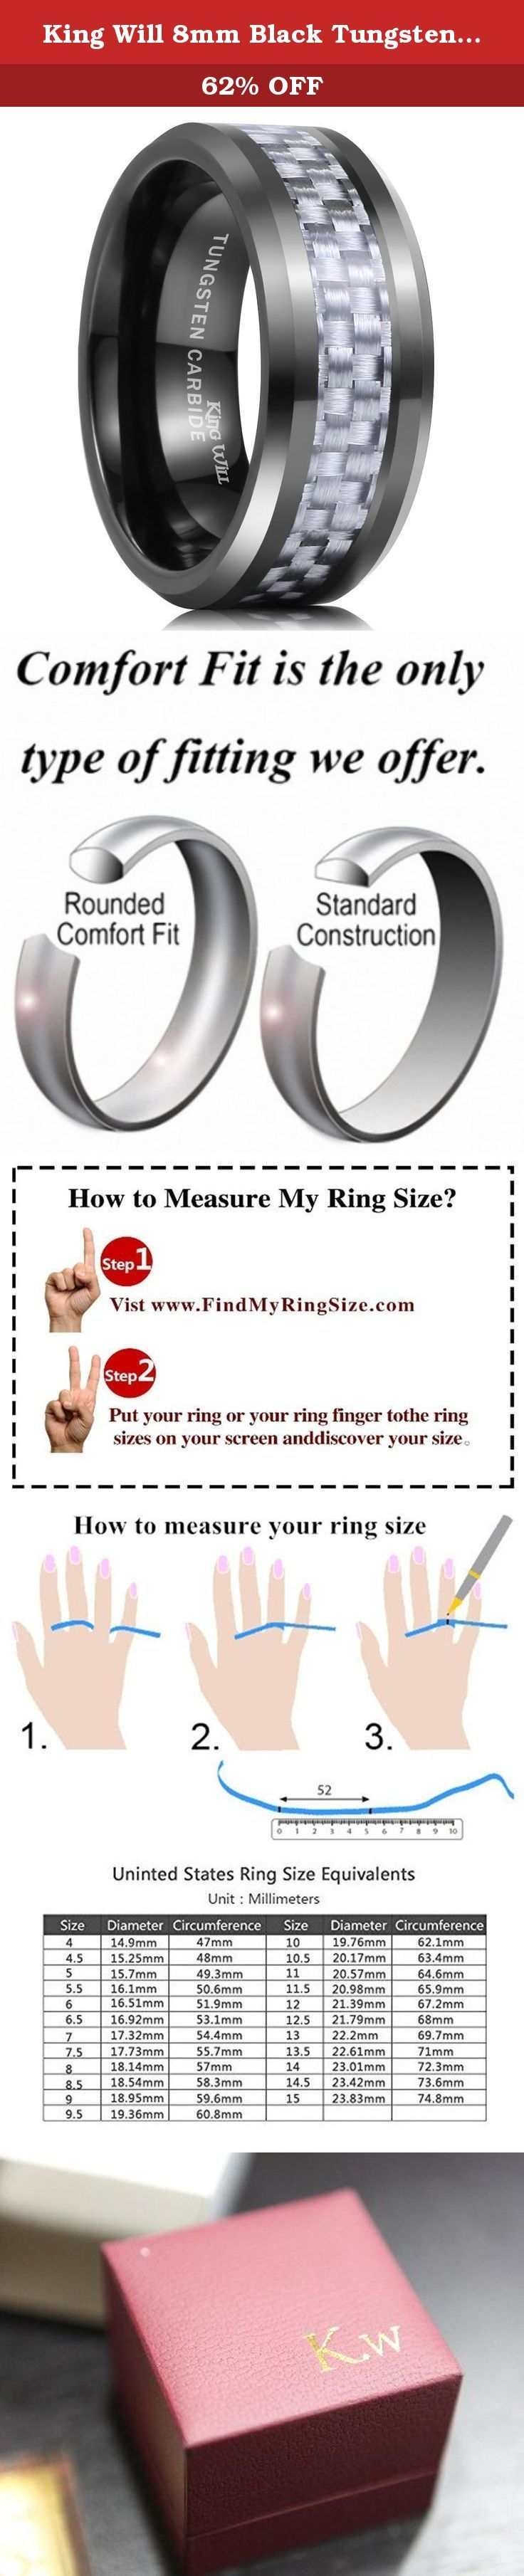 King Will 8mm Black Tungsten Silver Carbon Fiber Inlay High Polished Finish Wedding Band Ring (10). Tungsten is a very hard and dense metal with hardness between 8.5 and 9.5 on the Mohs hardness scale (Diamonds are a 10 - the highest). Its density, similar to that of gold, allows tungsten to be used in jewelry as an alternative to gold or platinum. Tungsten carbide is about 10 times harder than 18K Gold, four times harder than titanium, twice as hard as steel, and is the only rare and…